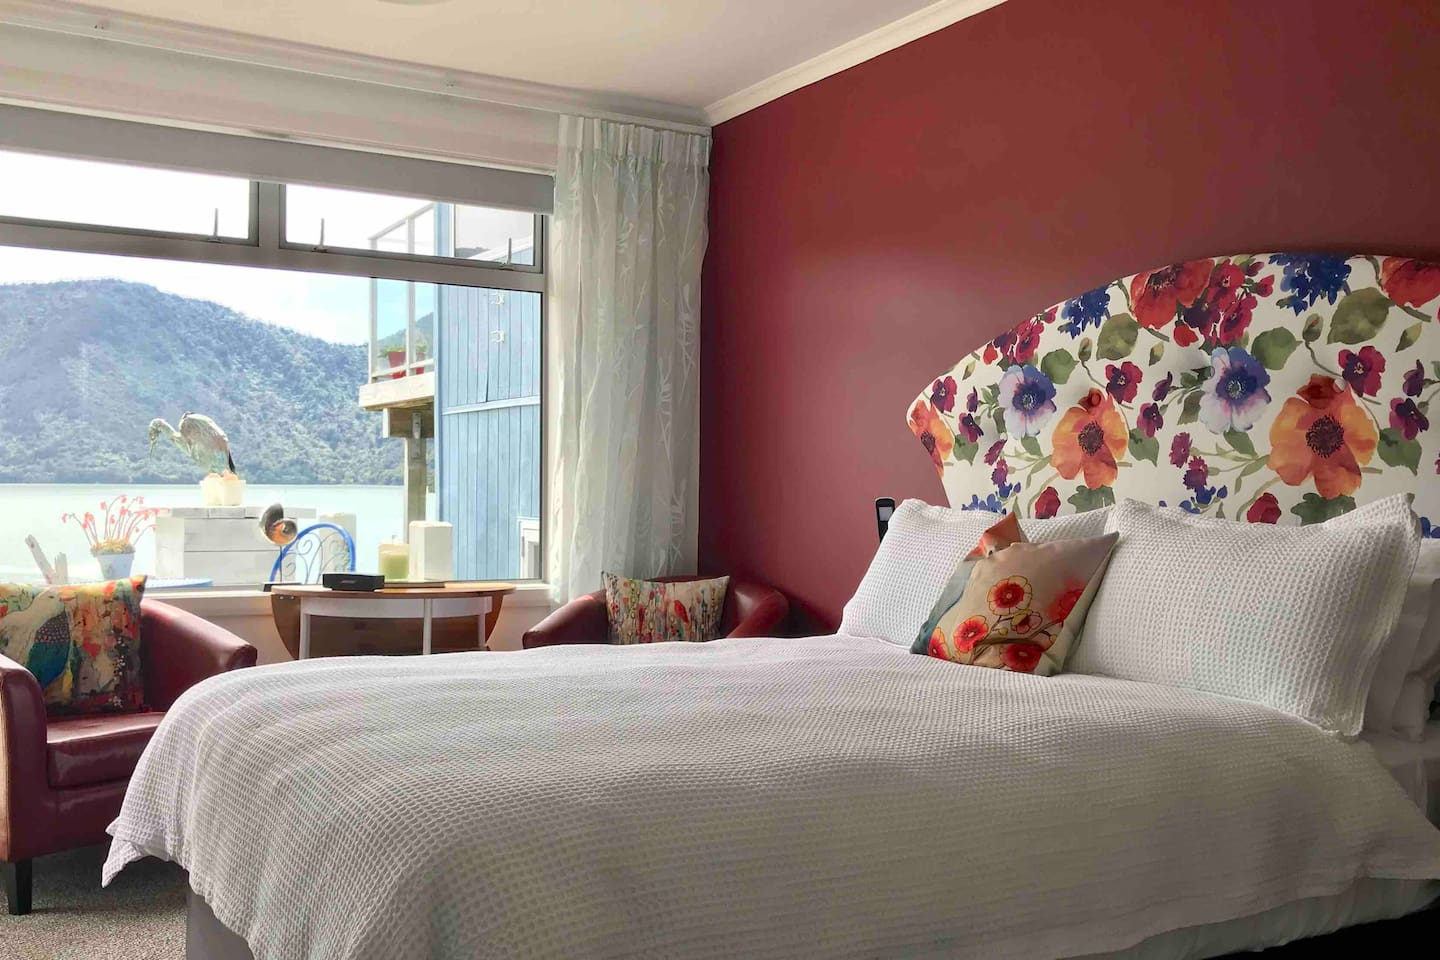 Wake up to an ever changing landscape tucked up in a comfortable bed and quality linen.